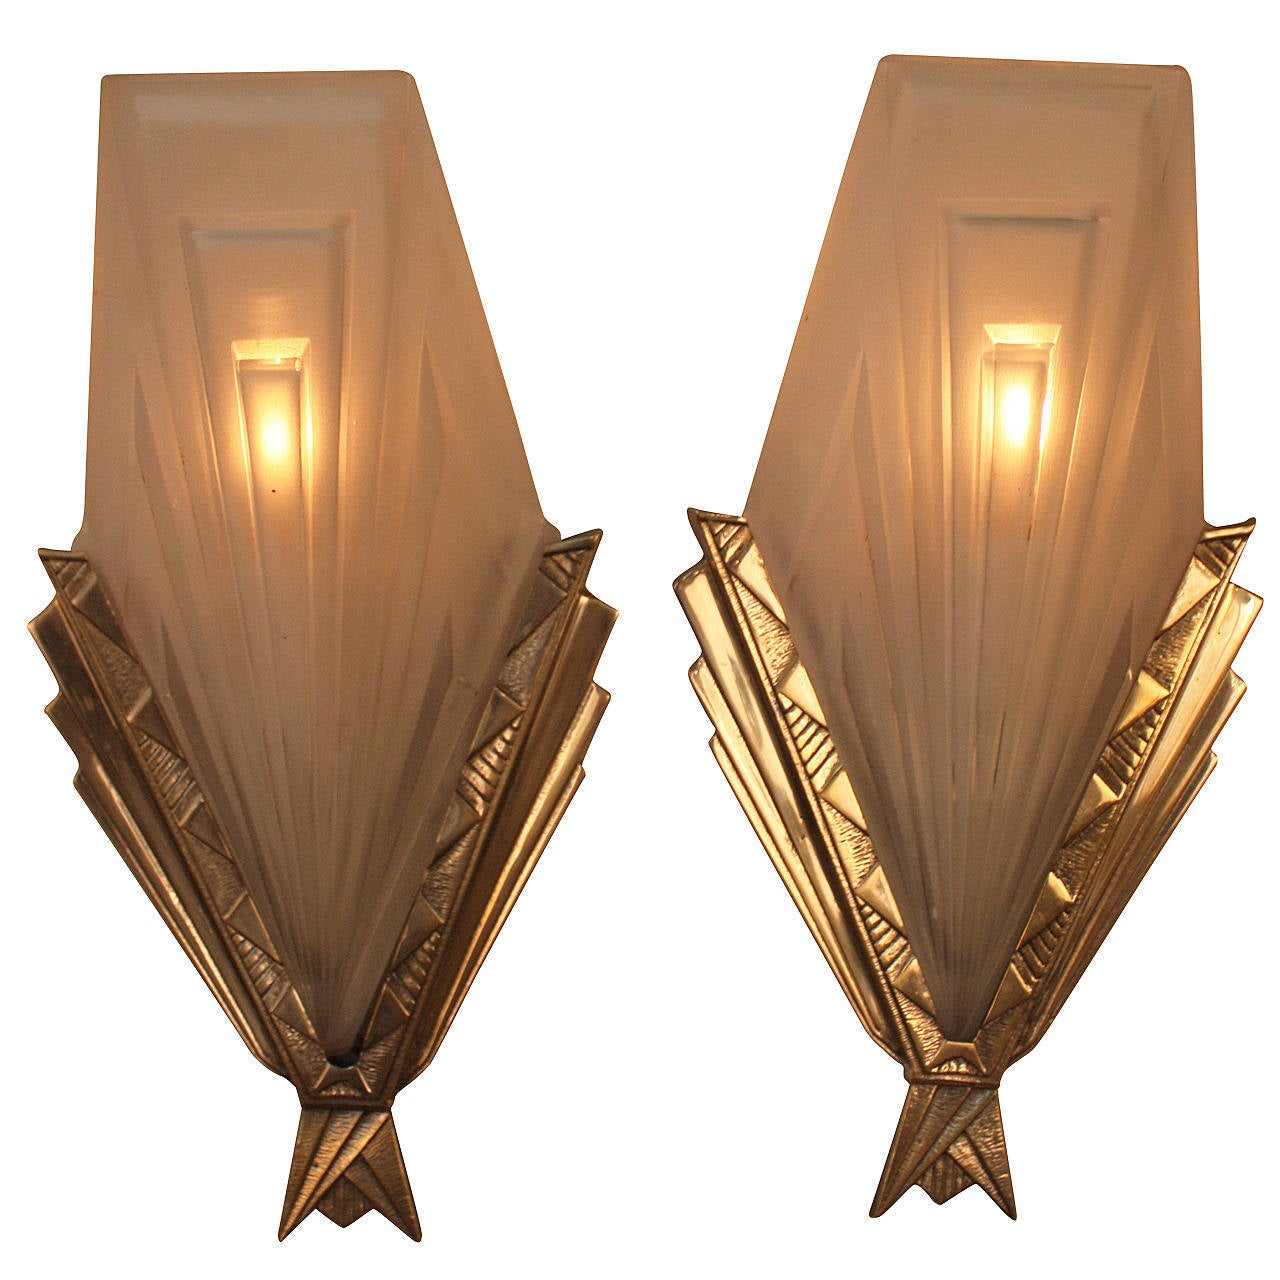 French Art Deco Wall Sconces : French Art Deco Wall Sconces by Degue at 1stdibs